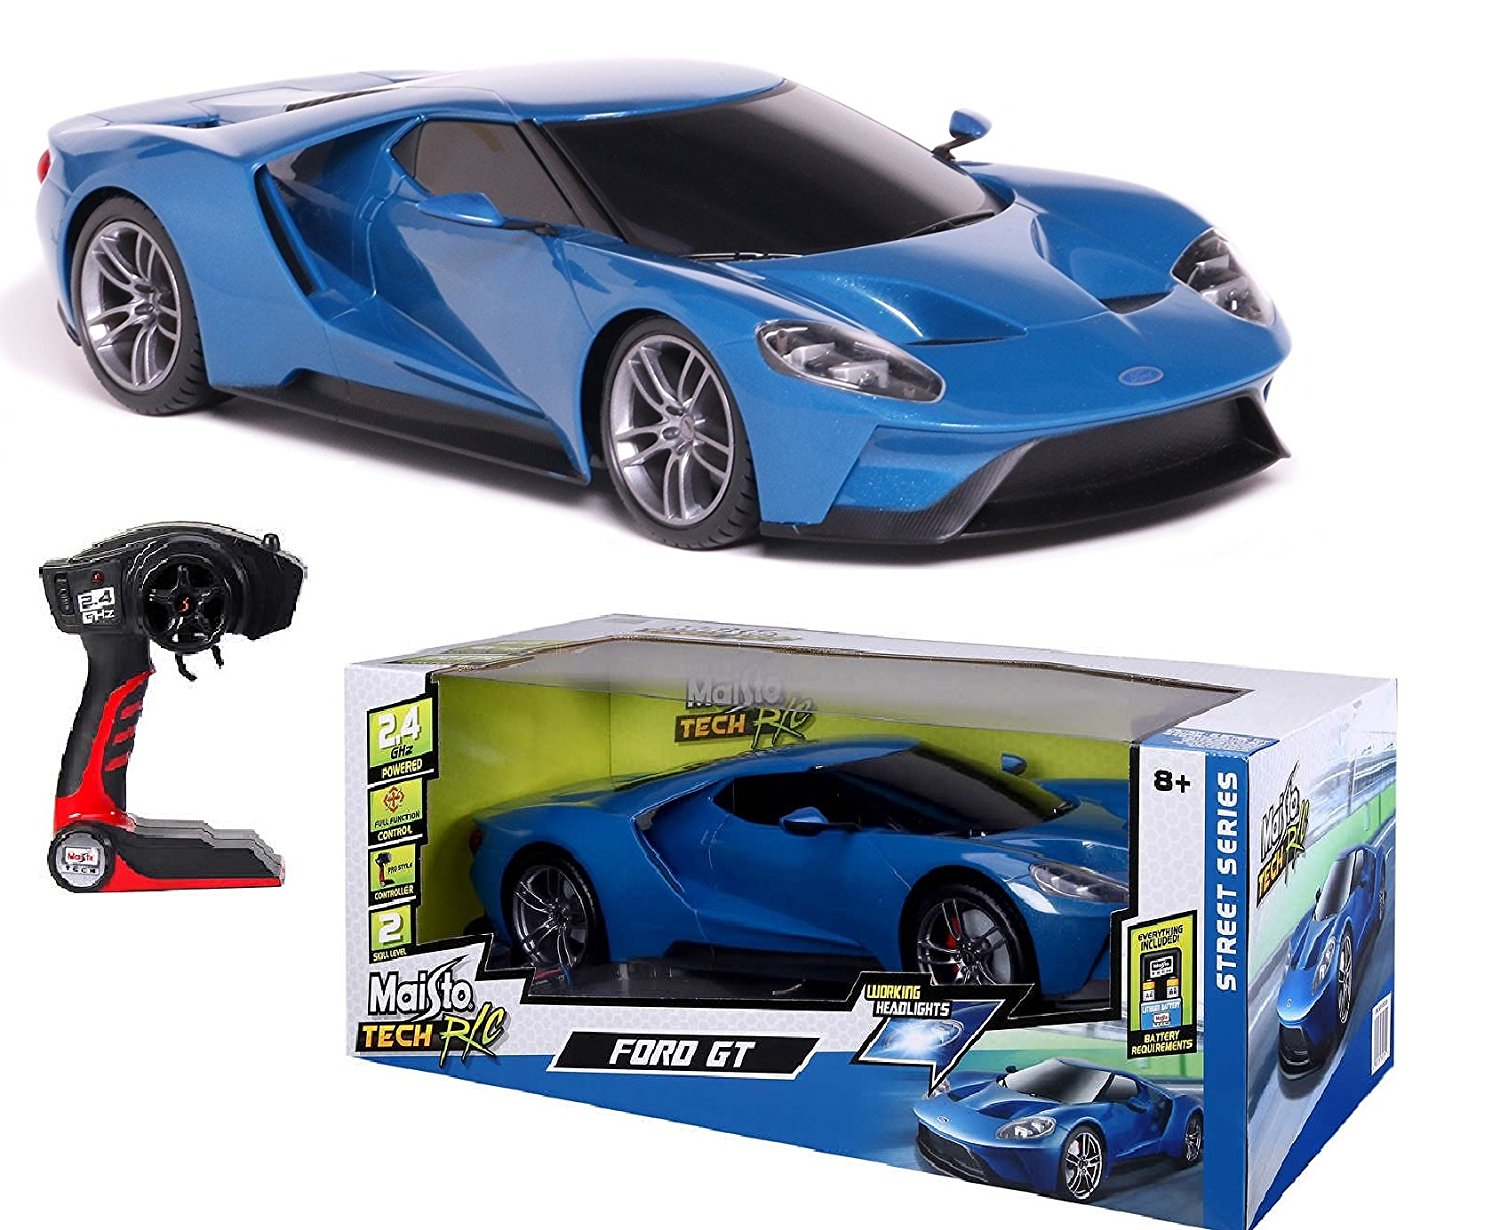 Maisto Tech R C  Scale Ford Gt Blue Pro Style Controller Working